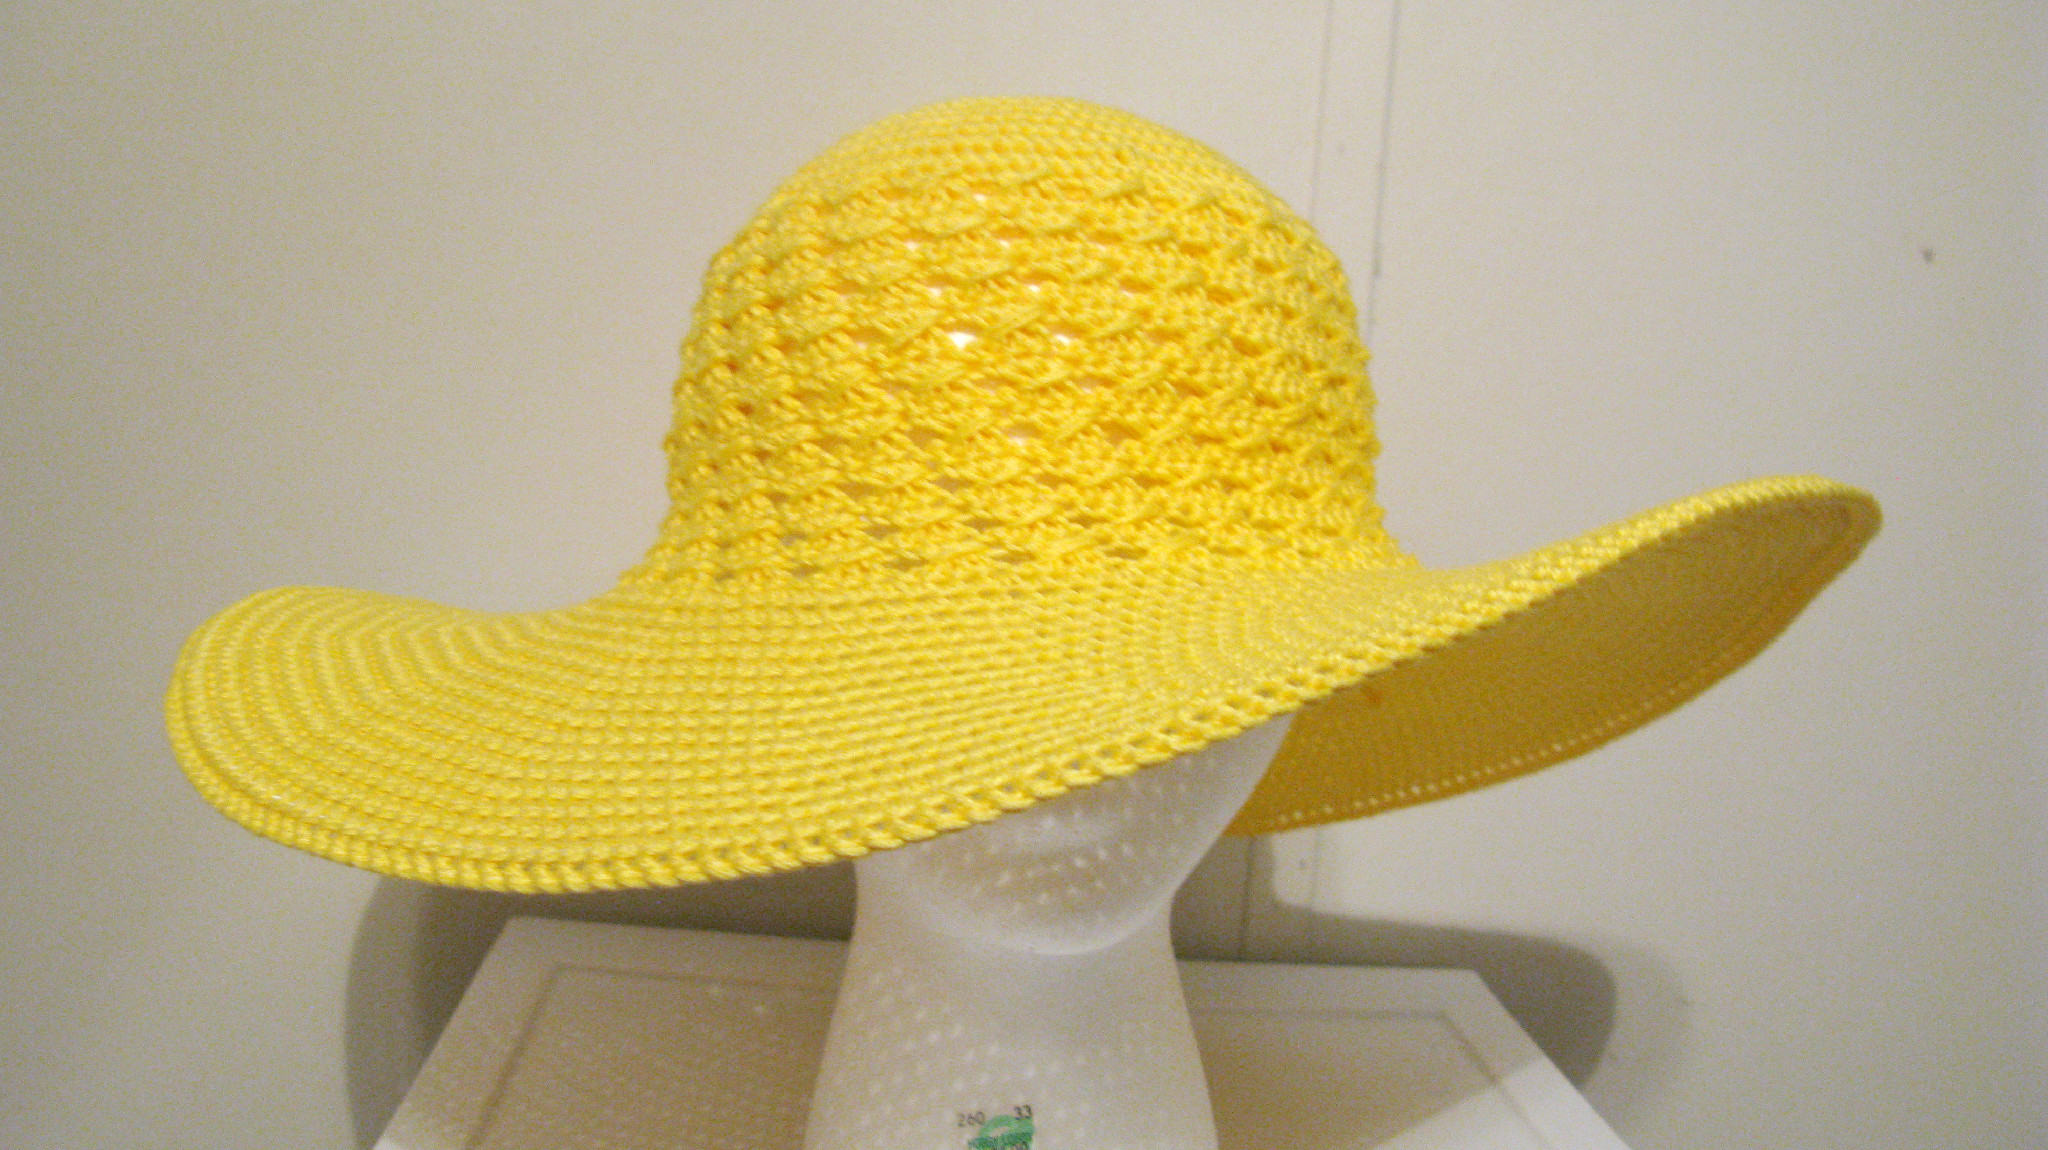 Crocheting Hats : Enjoying a Few Moments of Crocheting a Summer Beach Hat